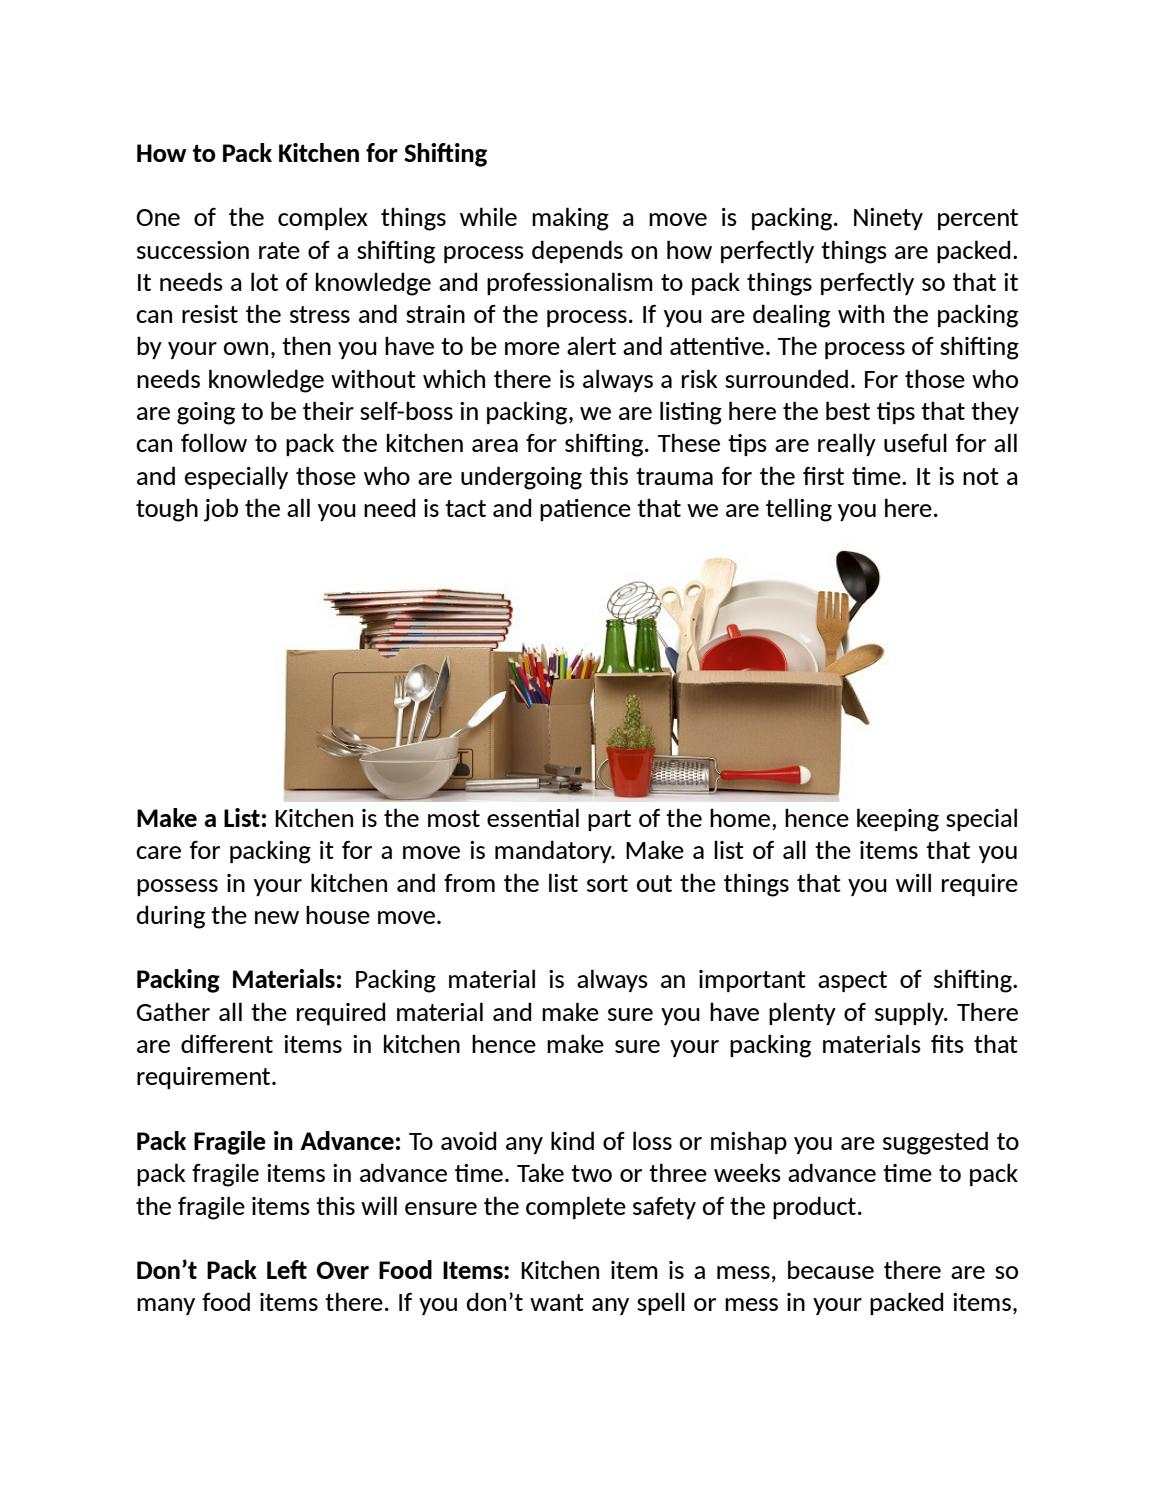 Pack Kitchen Items With Hyderabad Moving SolutionsHow To Pack Kitchen For  Shifting By Anjali Singh   Issuu